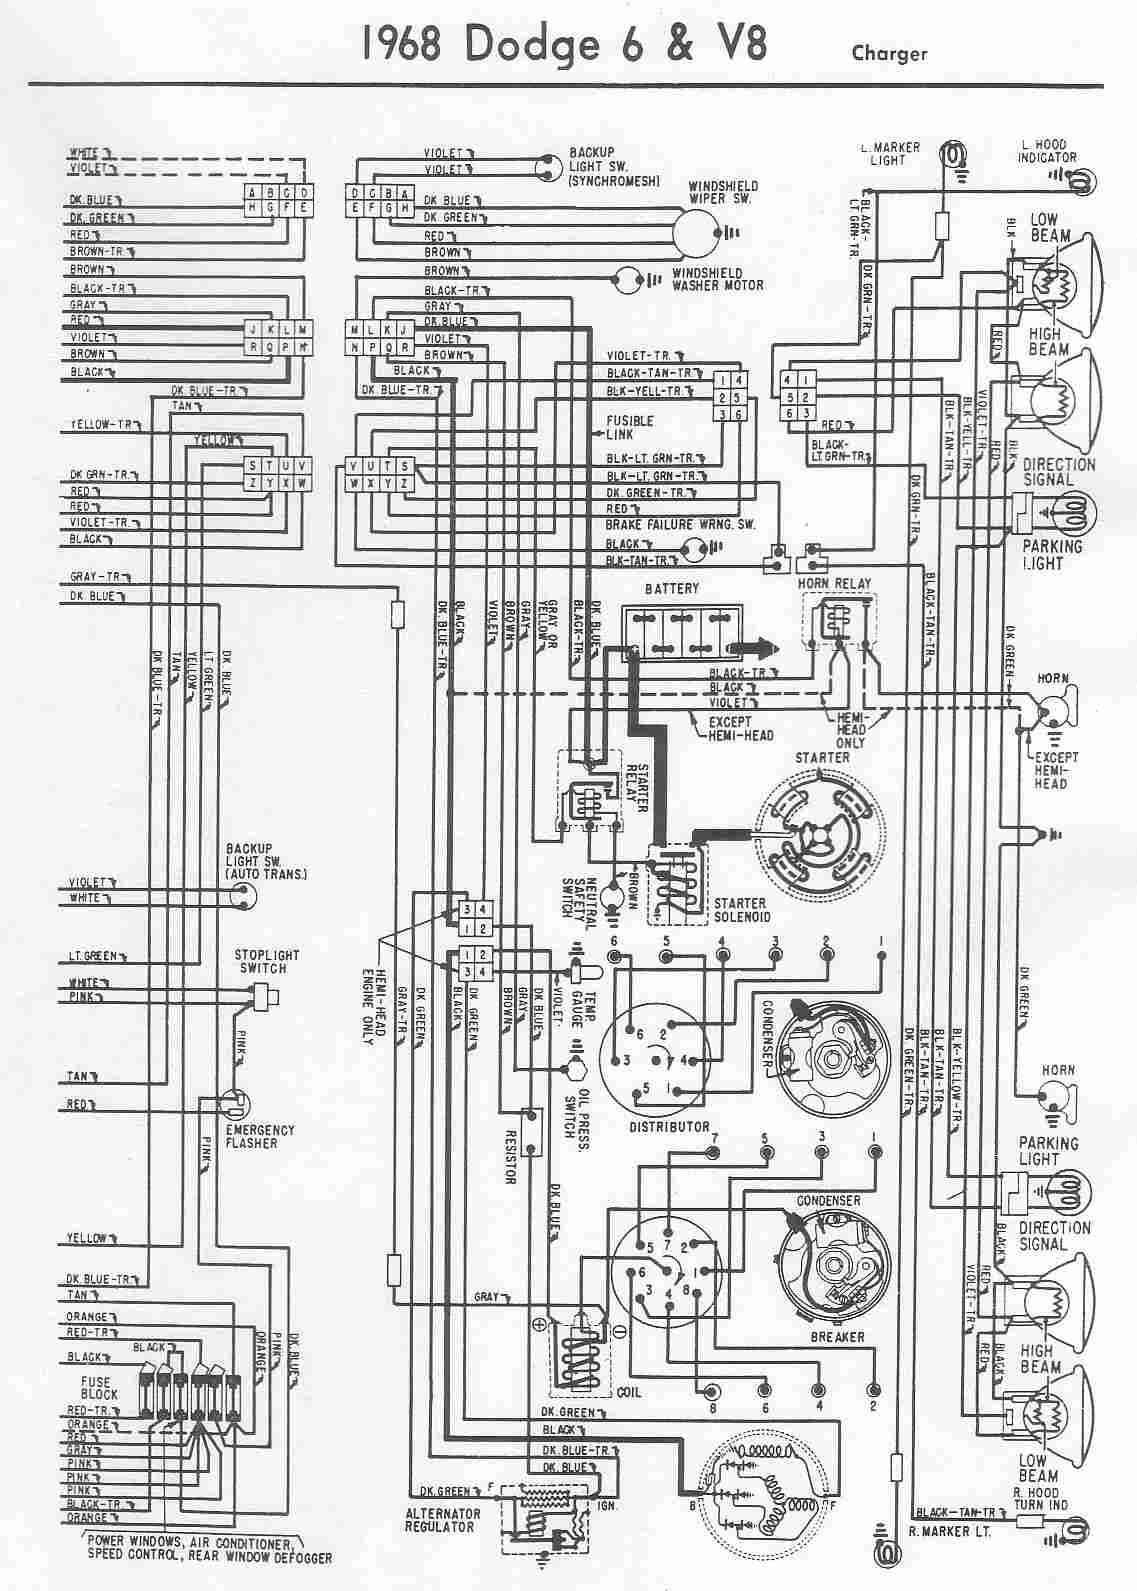 Dodge car manuals wiring diagrams pdf fault codes download fandeluxe